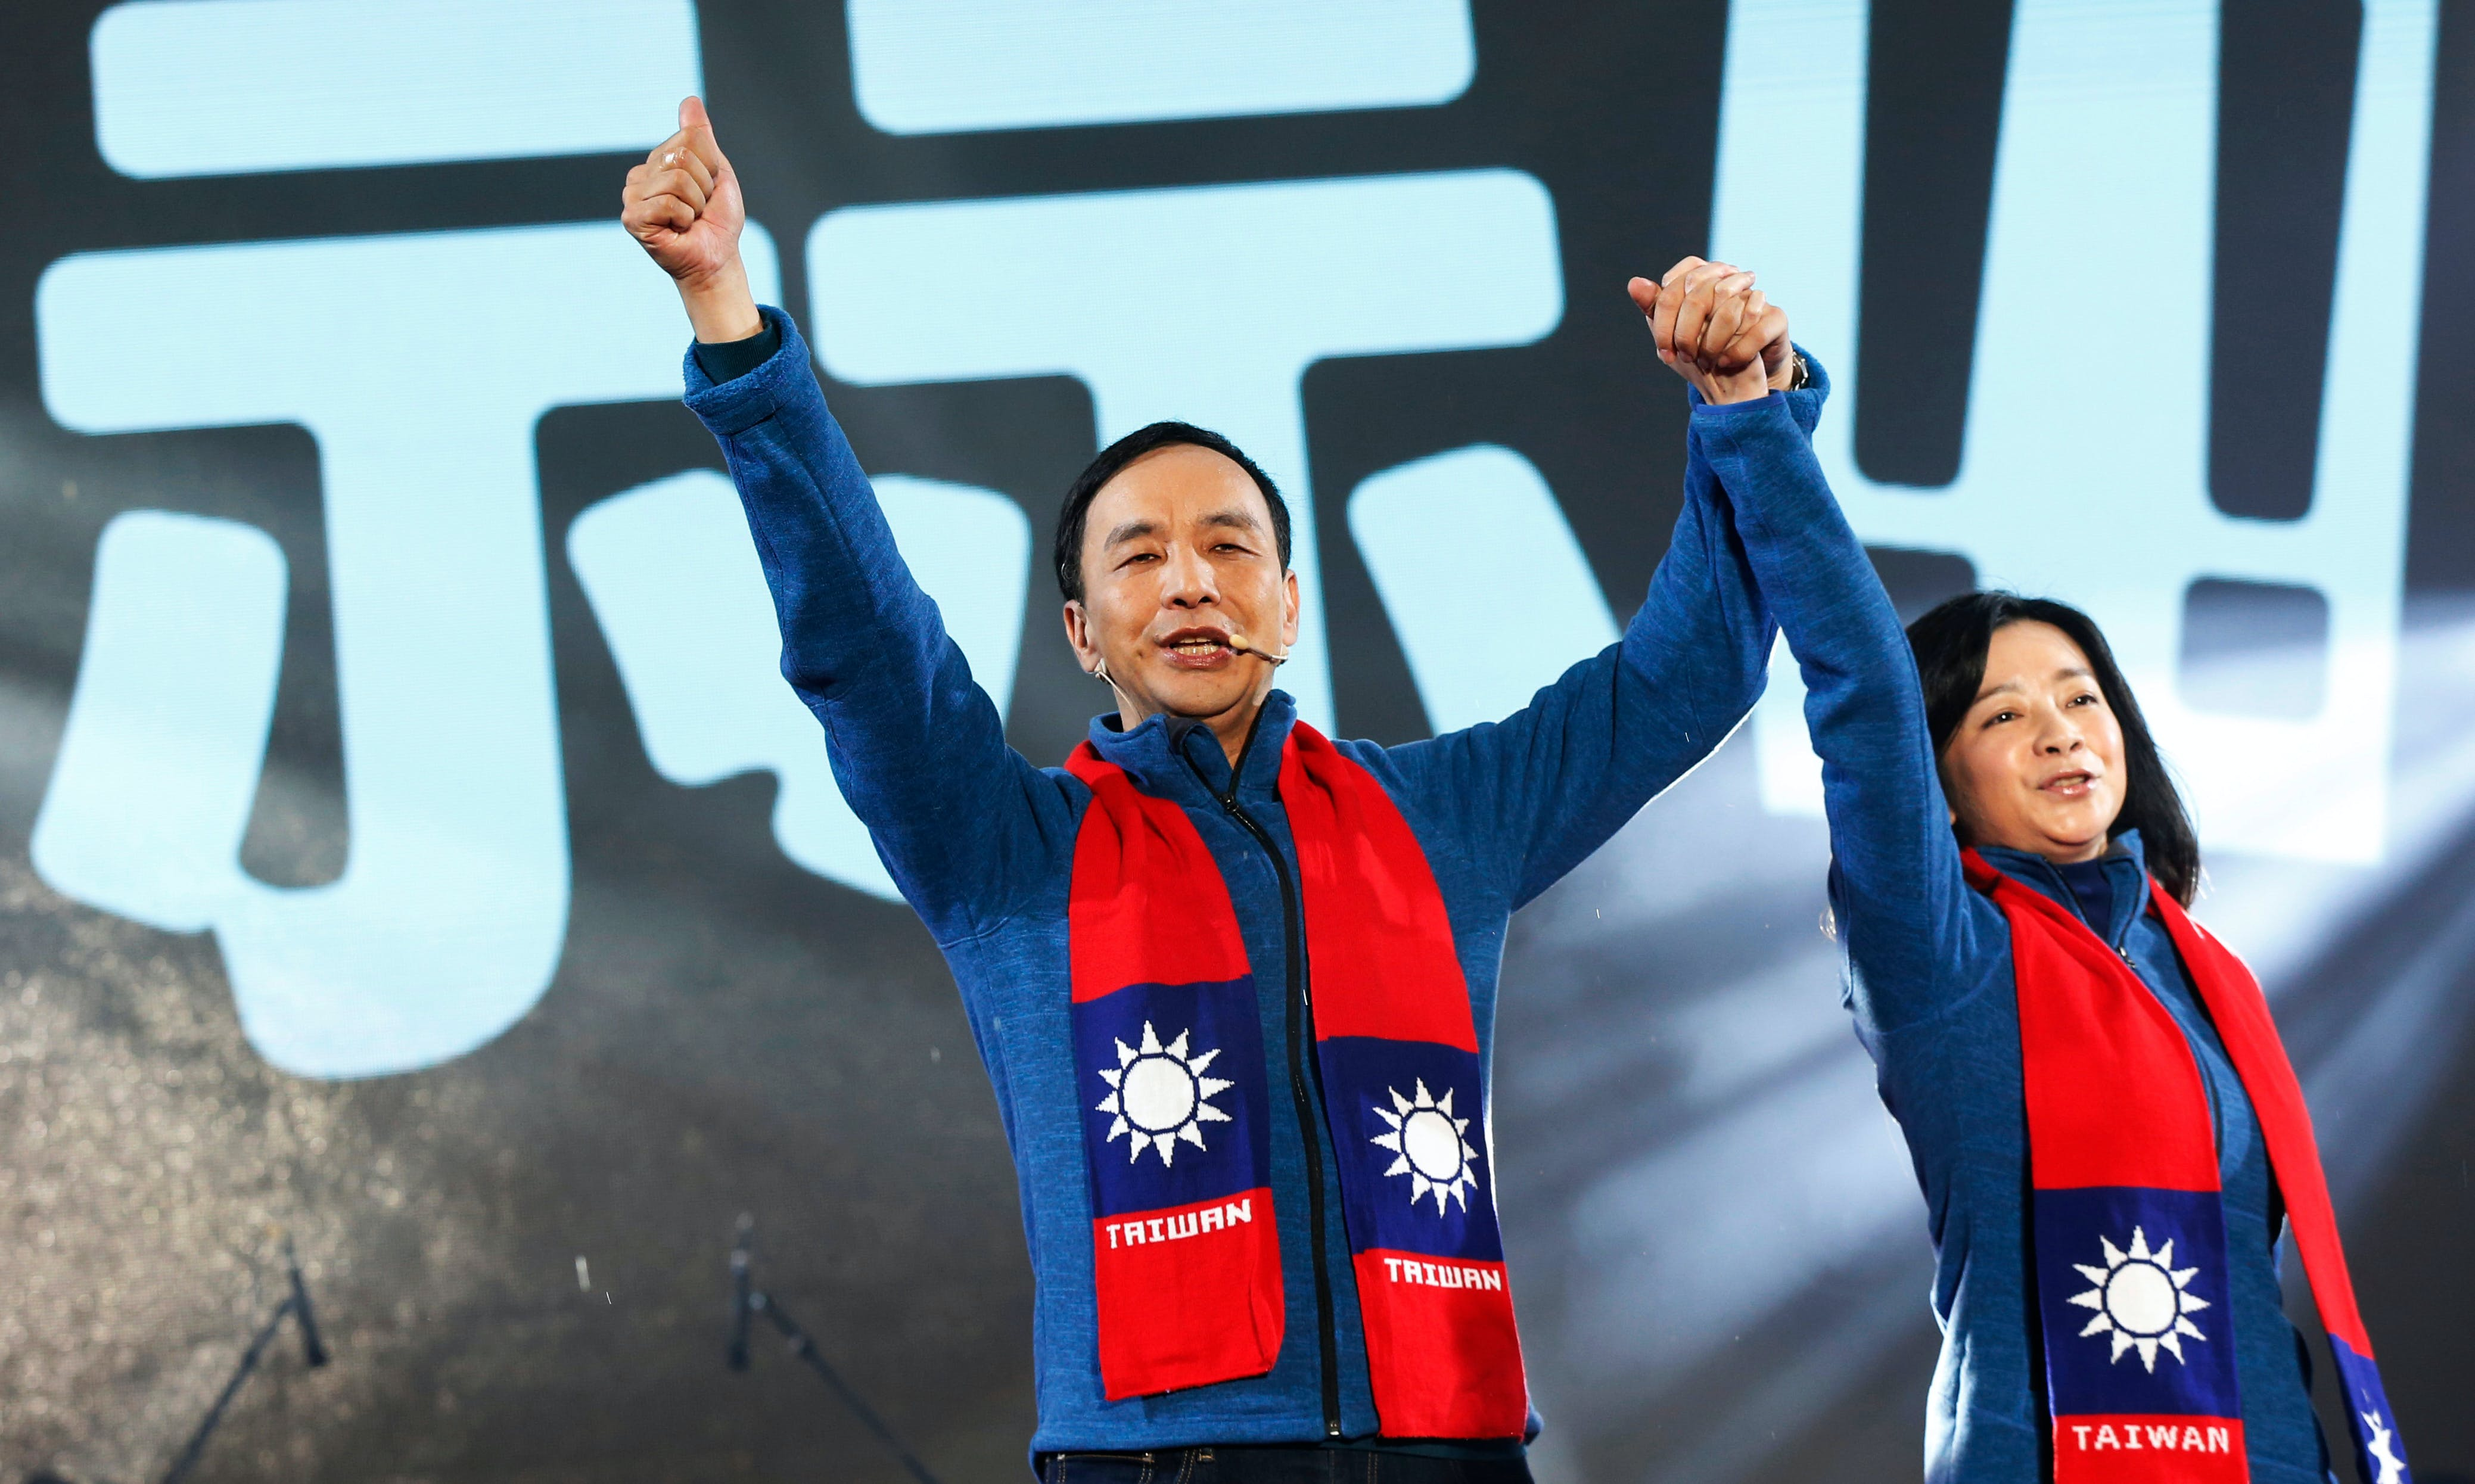 KMT's Eric Chu Announces He Will Run for President in 2020